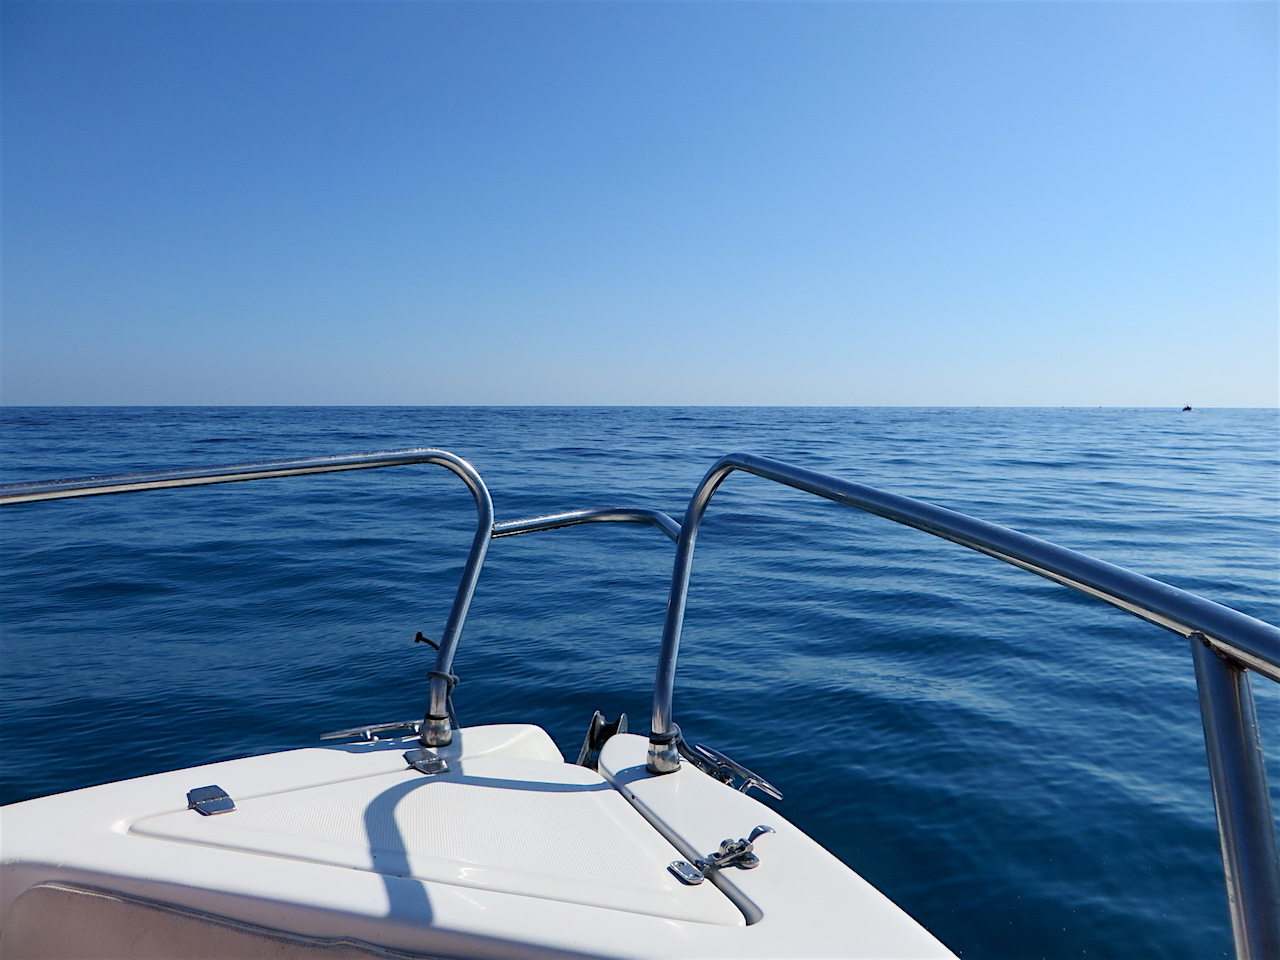 The Mediterranean Ocean off Sicily, photographed during a boat trip in August 2017 (Photo: Andy Worthington).